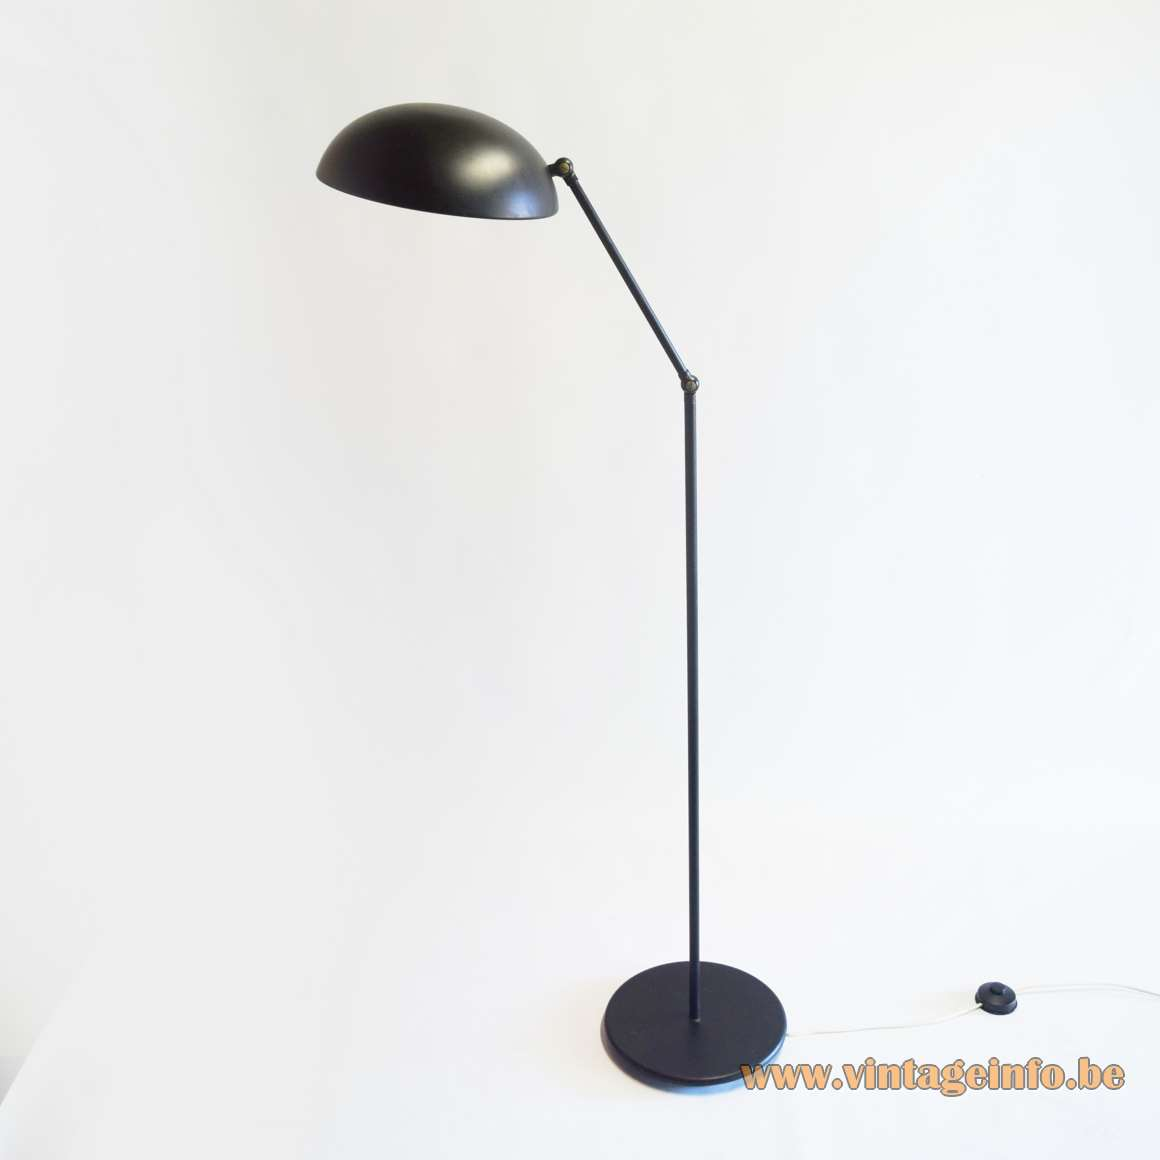 Hala black dish floor lamp round base 2 rods joints E27 socket 1970s Mid-Century Modern Zeist The Netherlands